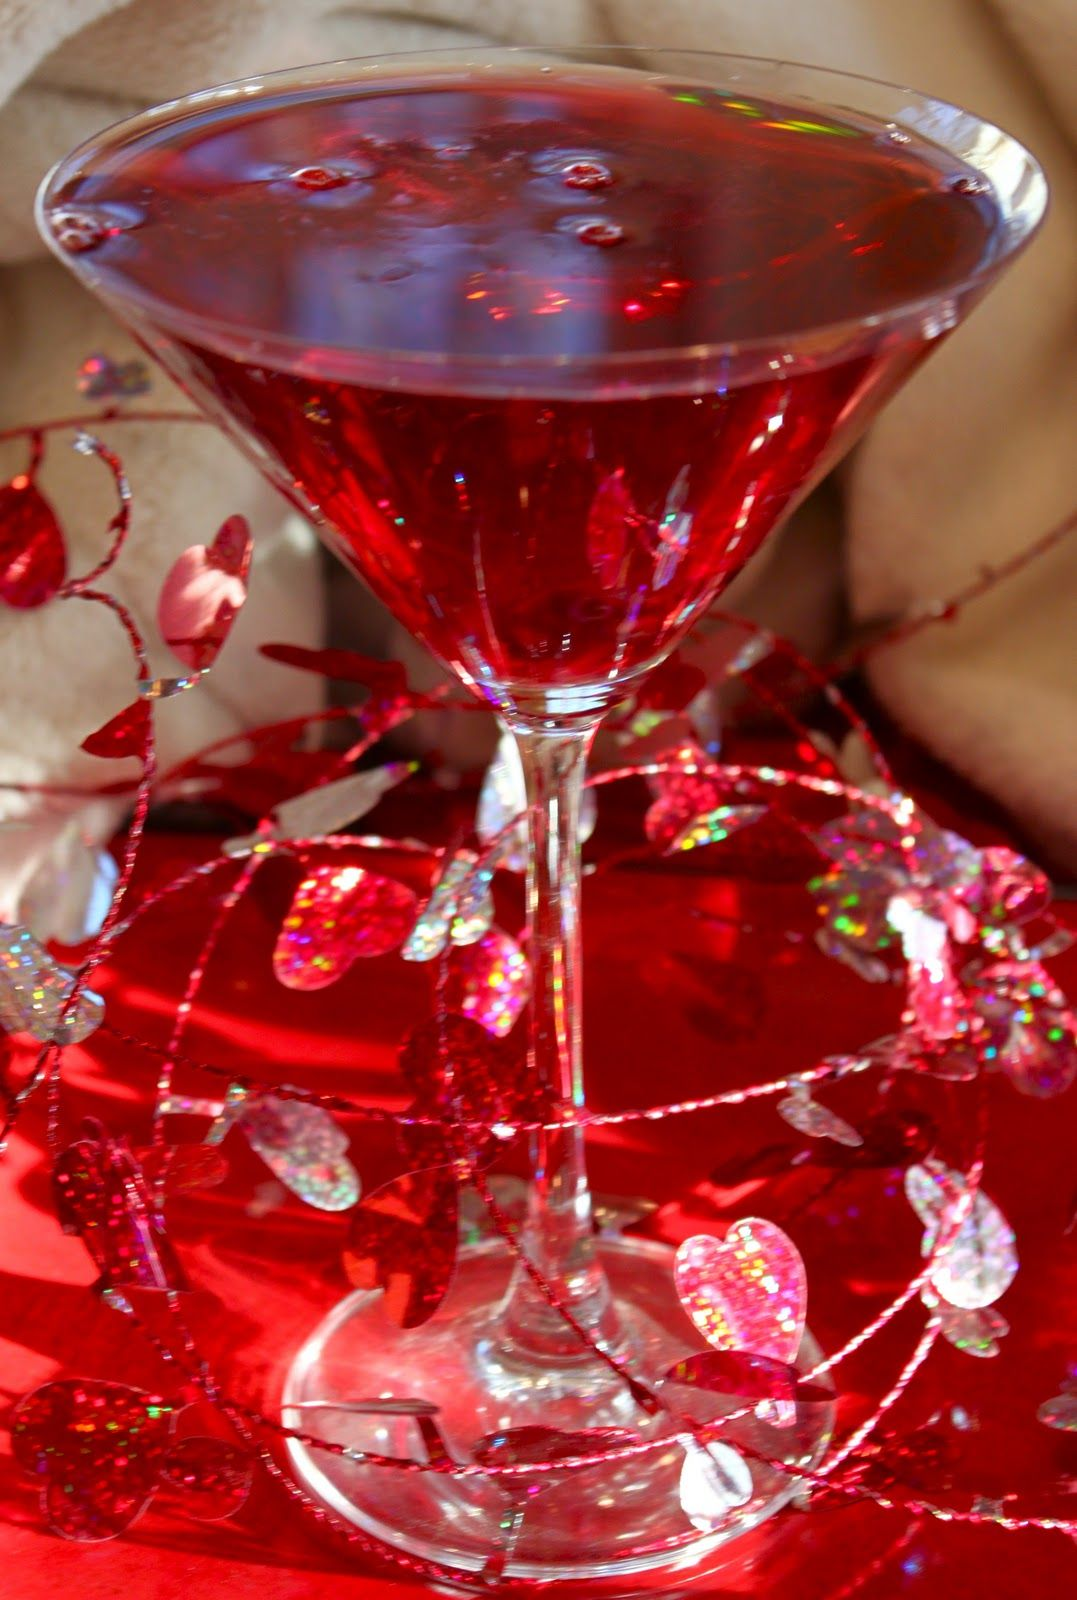 La Bella Vita Ruby Red Pomatini For Valentine S Day Cheer Ruby Red Pretty Drinks Healthy Cocktails